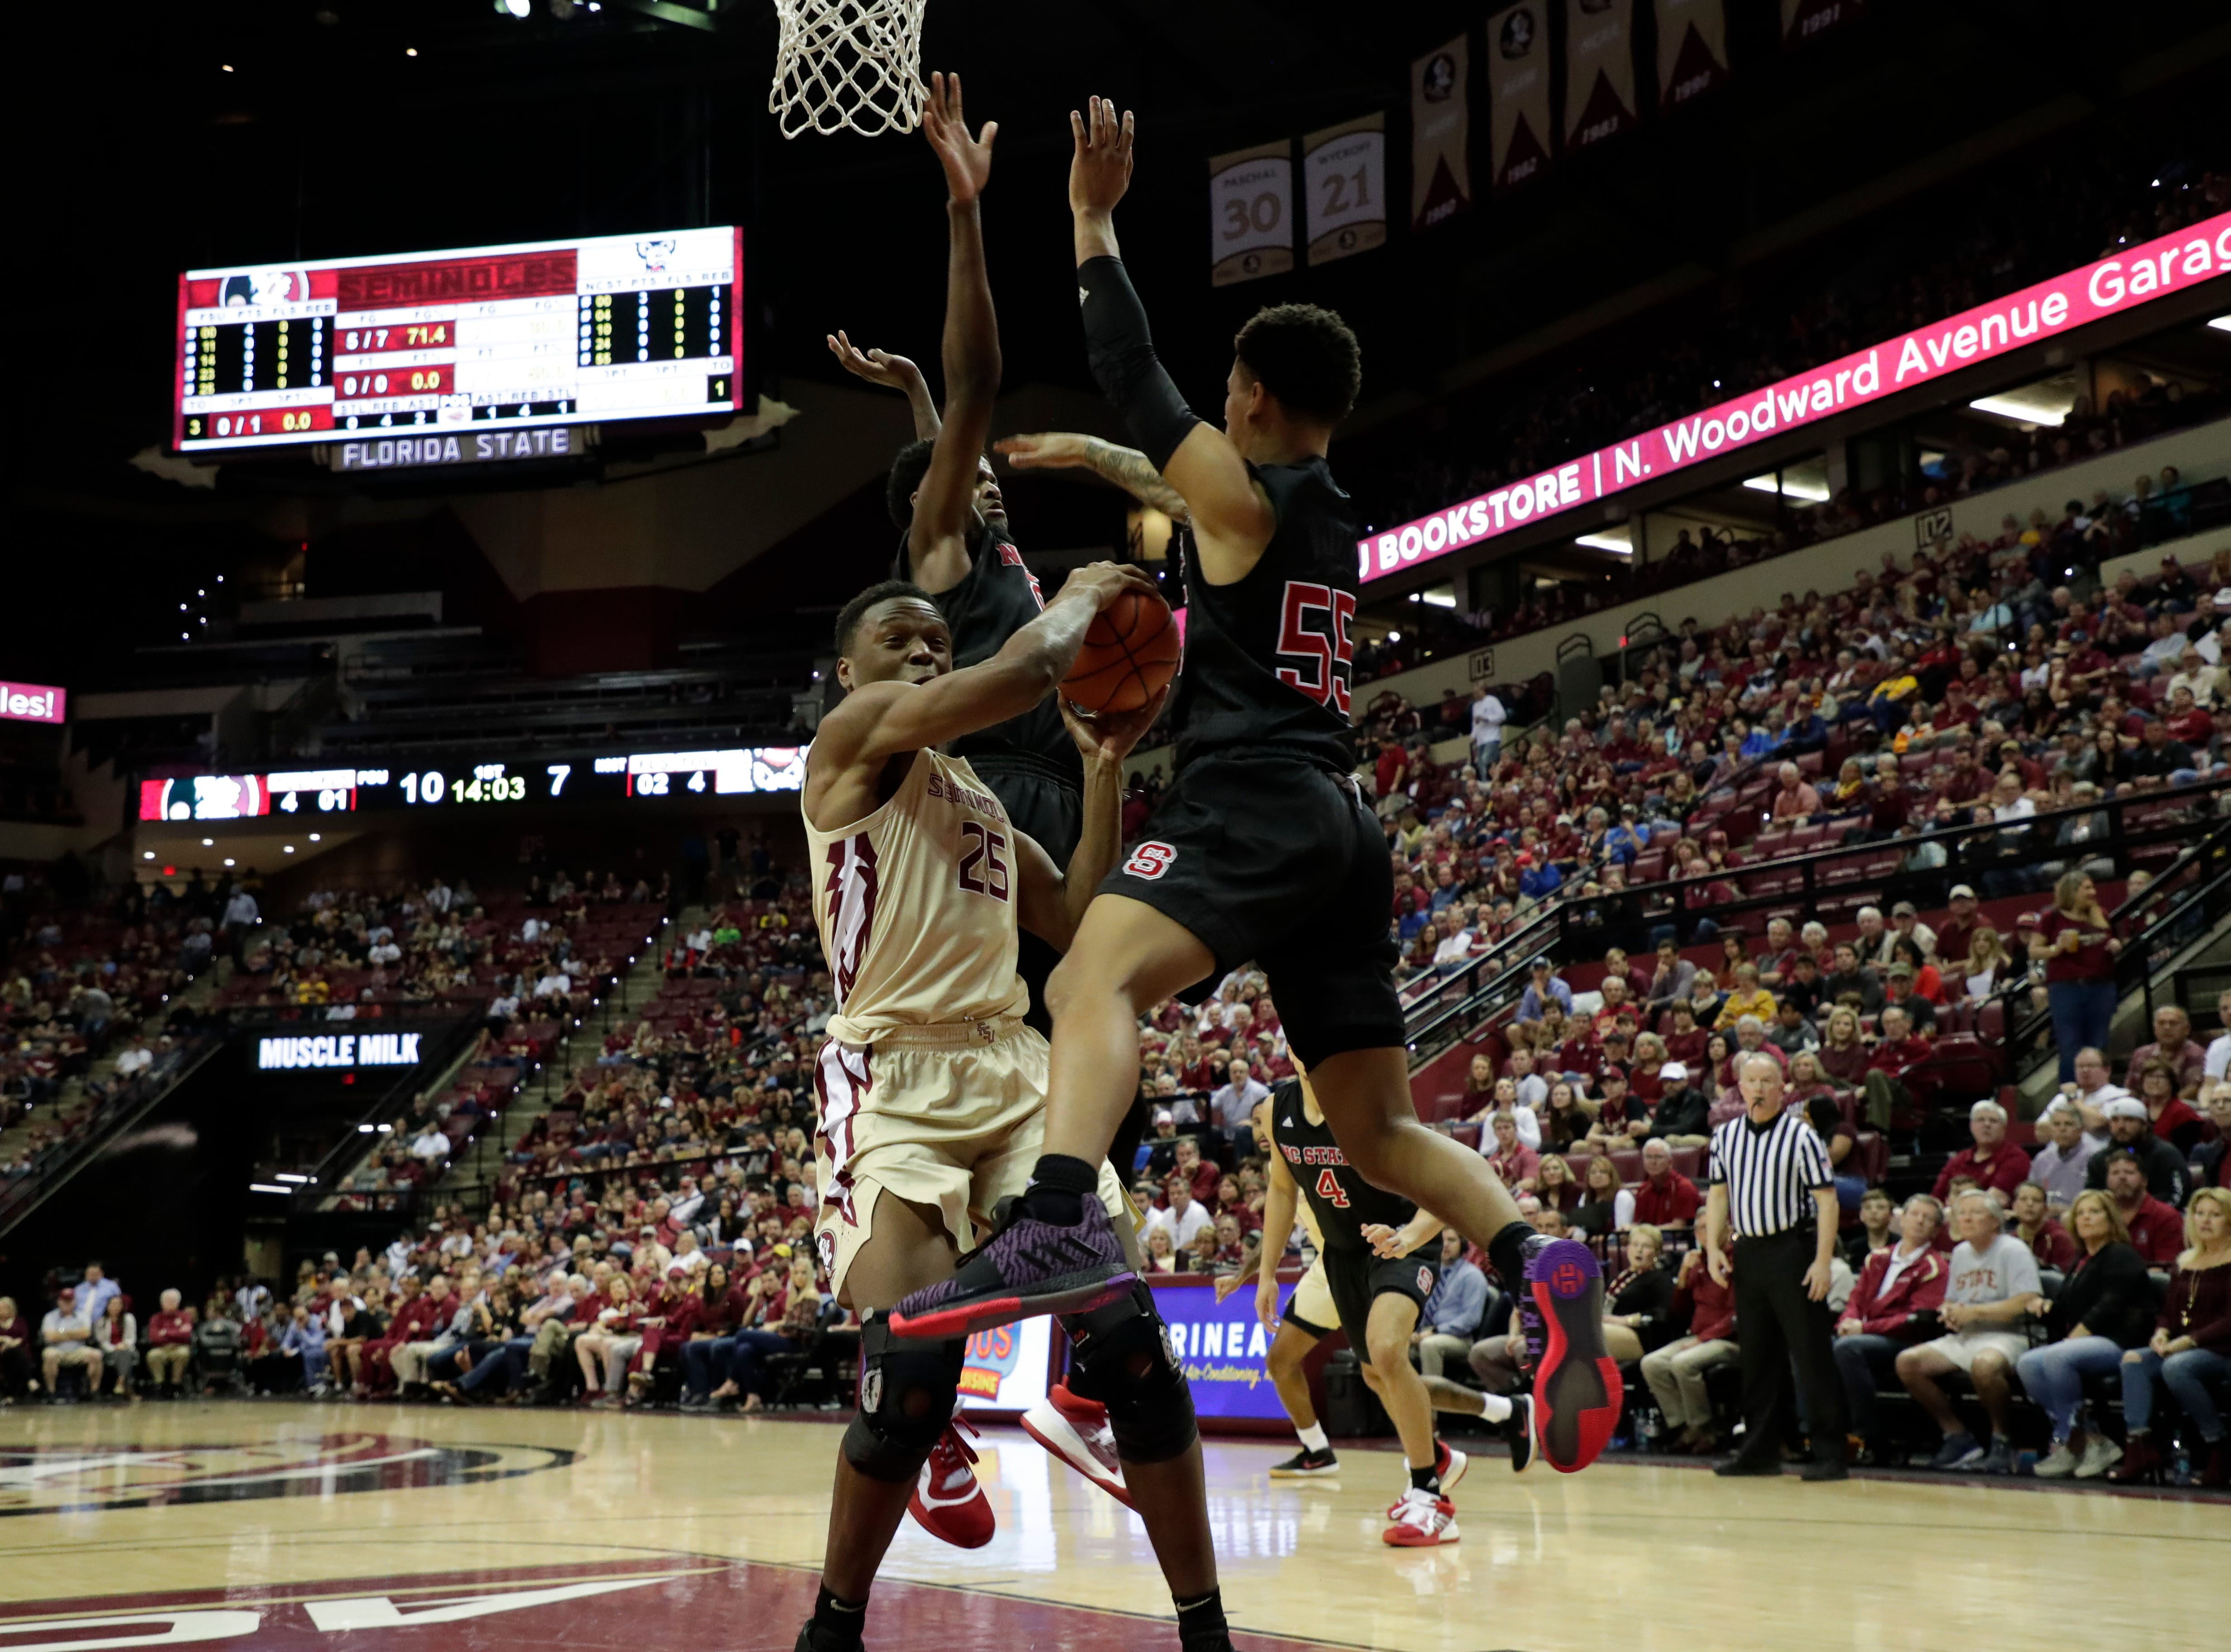 Florida State Seminoles forward Mfiondu Kabengele (25) fights his way to put up a shot. The Florida State Seminoles host the NC State Wolfpack at the Tucker Civic Center Saturday, March 2, 2019.